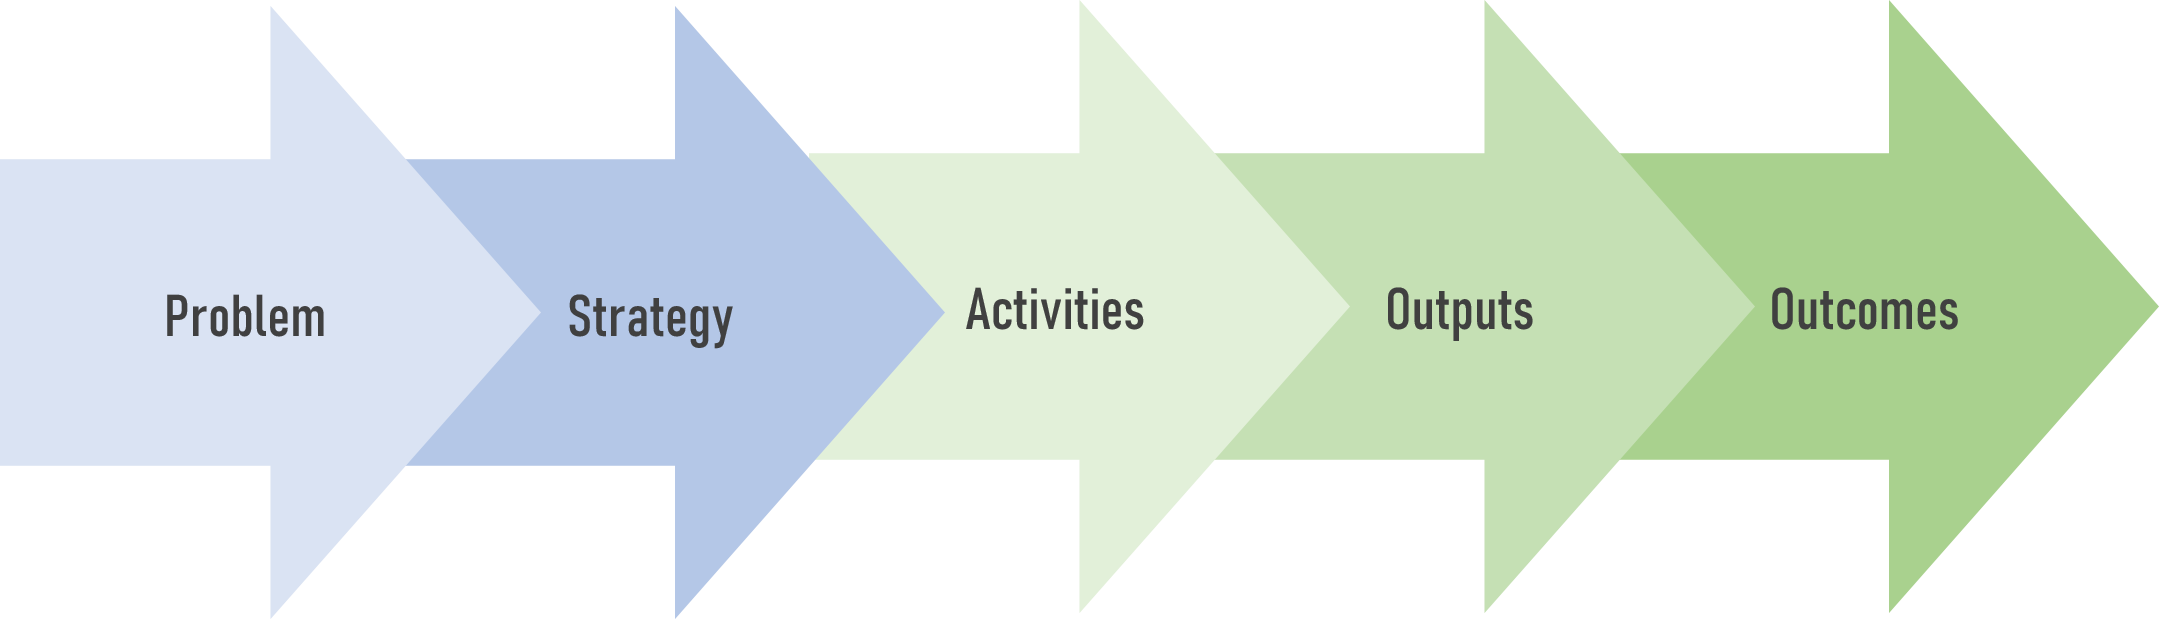 A theory of change model that starts with a problem and flows through strategies, activities, outputs, and outcomes.